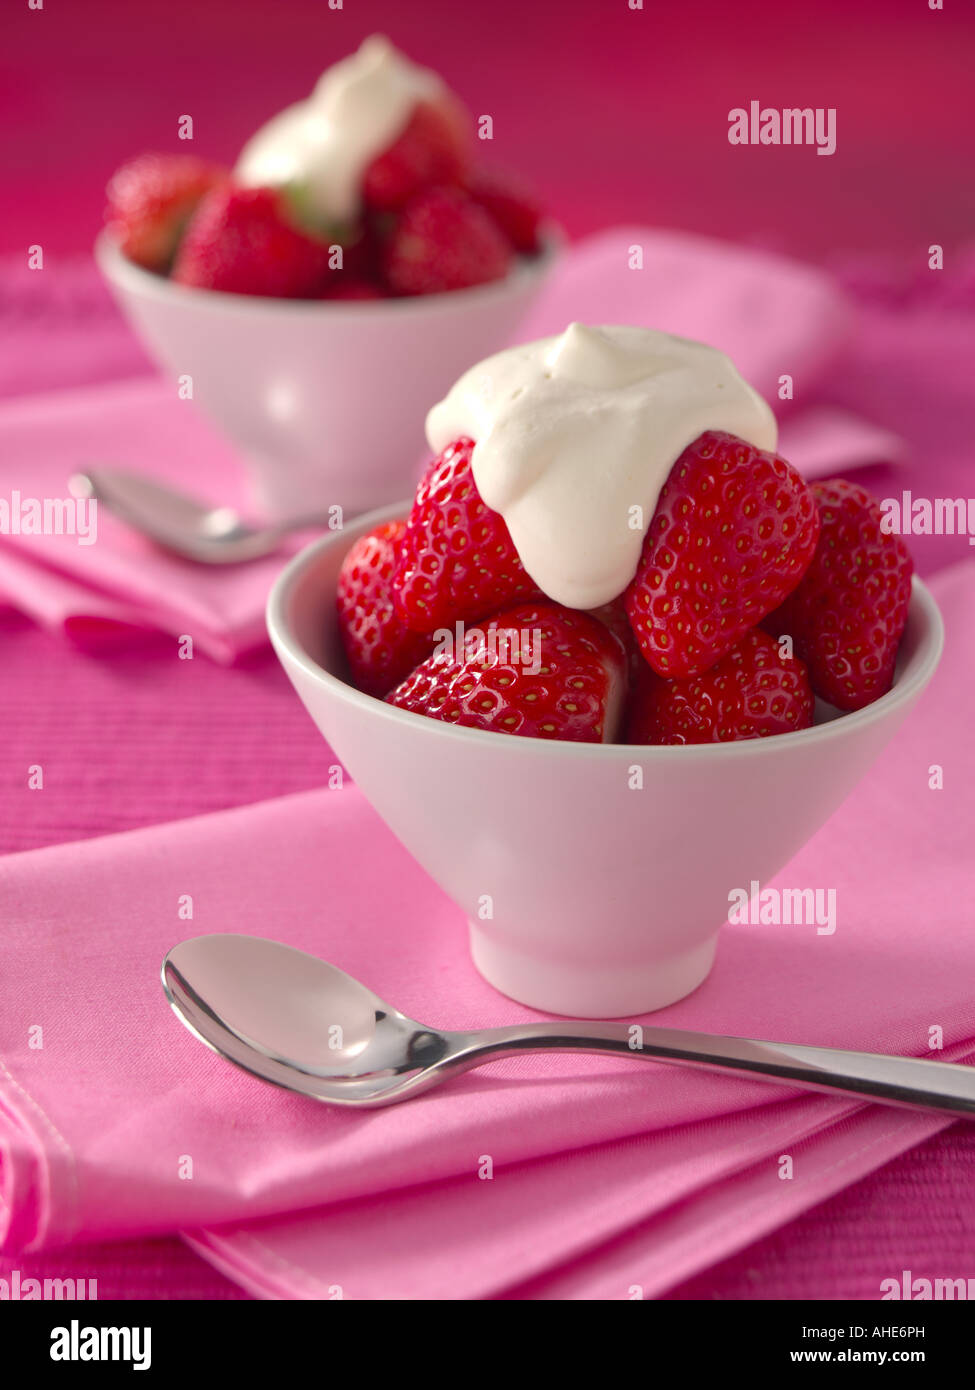 Valentines Day Strawberries And Cream Editorial Food Stock Photo